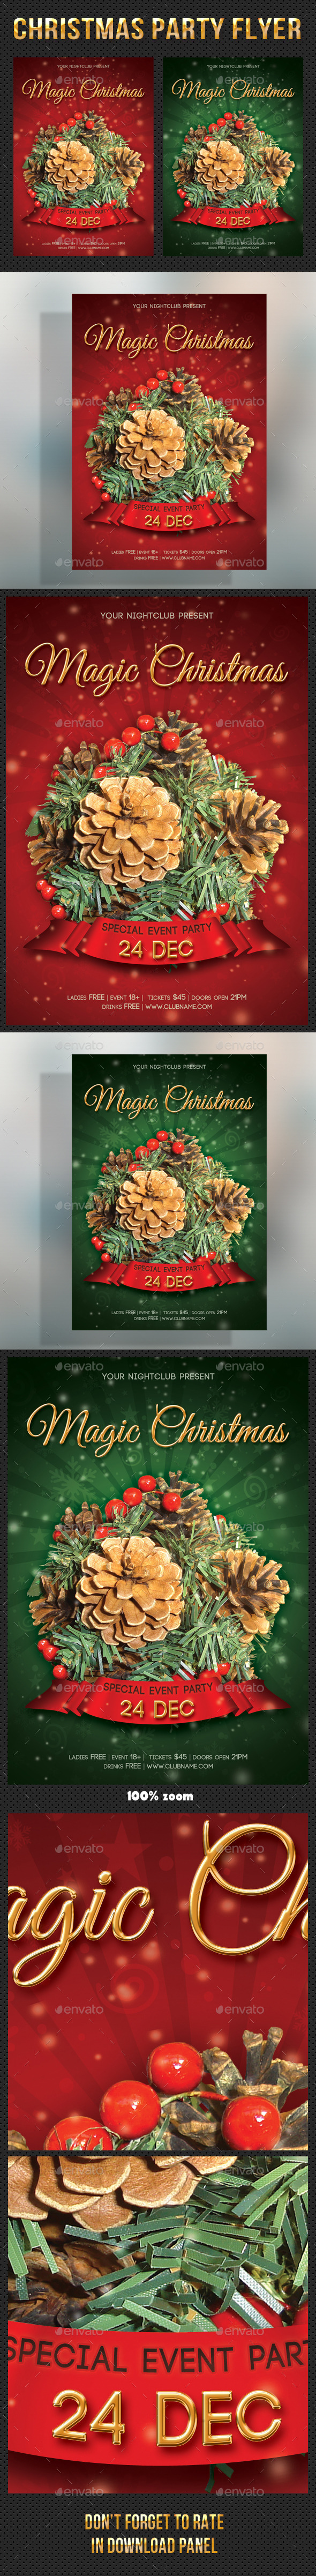 GraphicRiver Merry Christmas Party Flyer 04 9828555